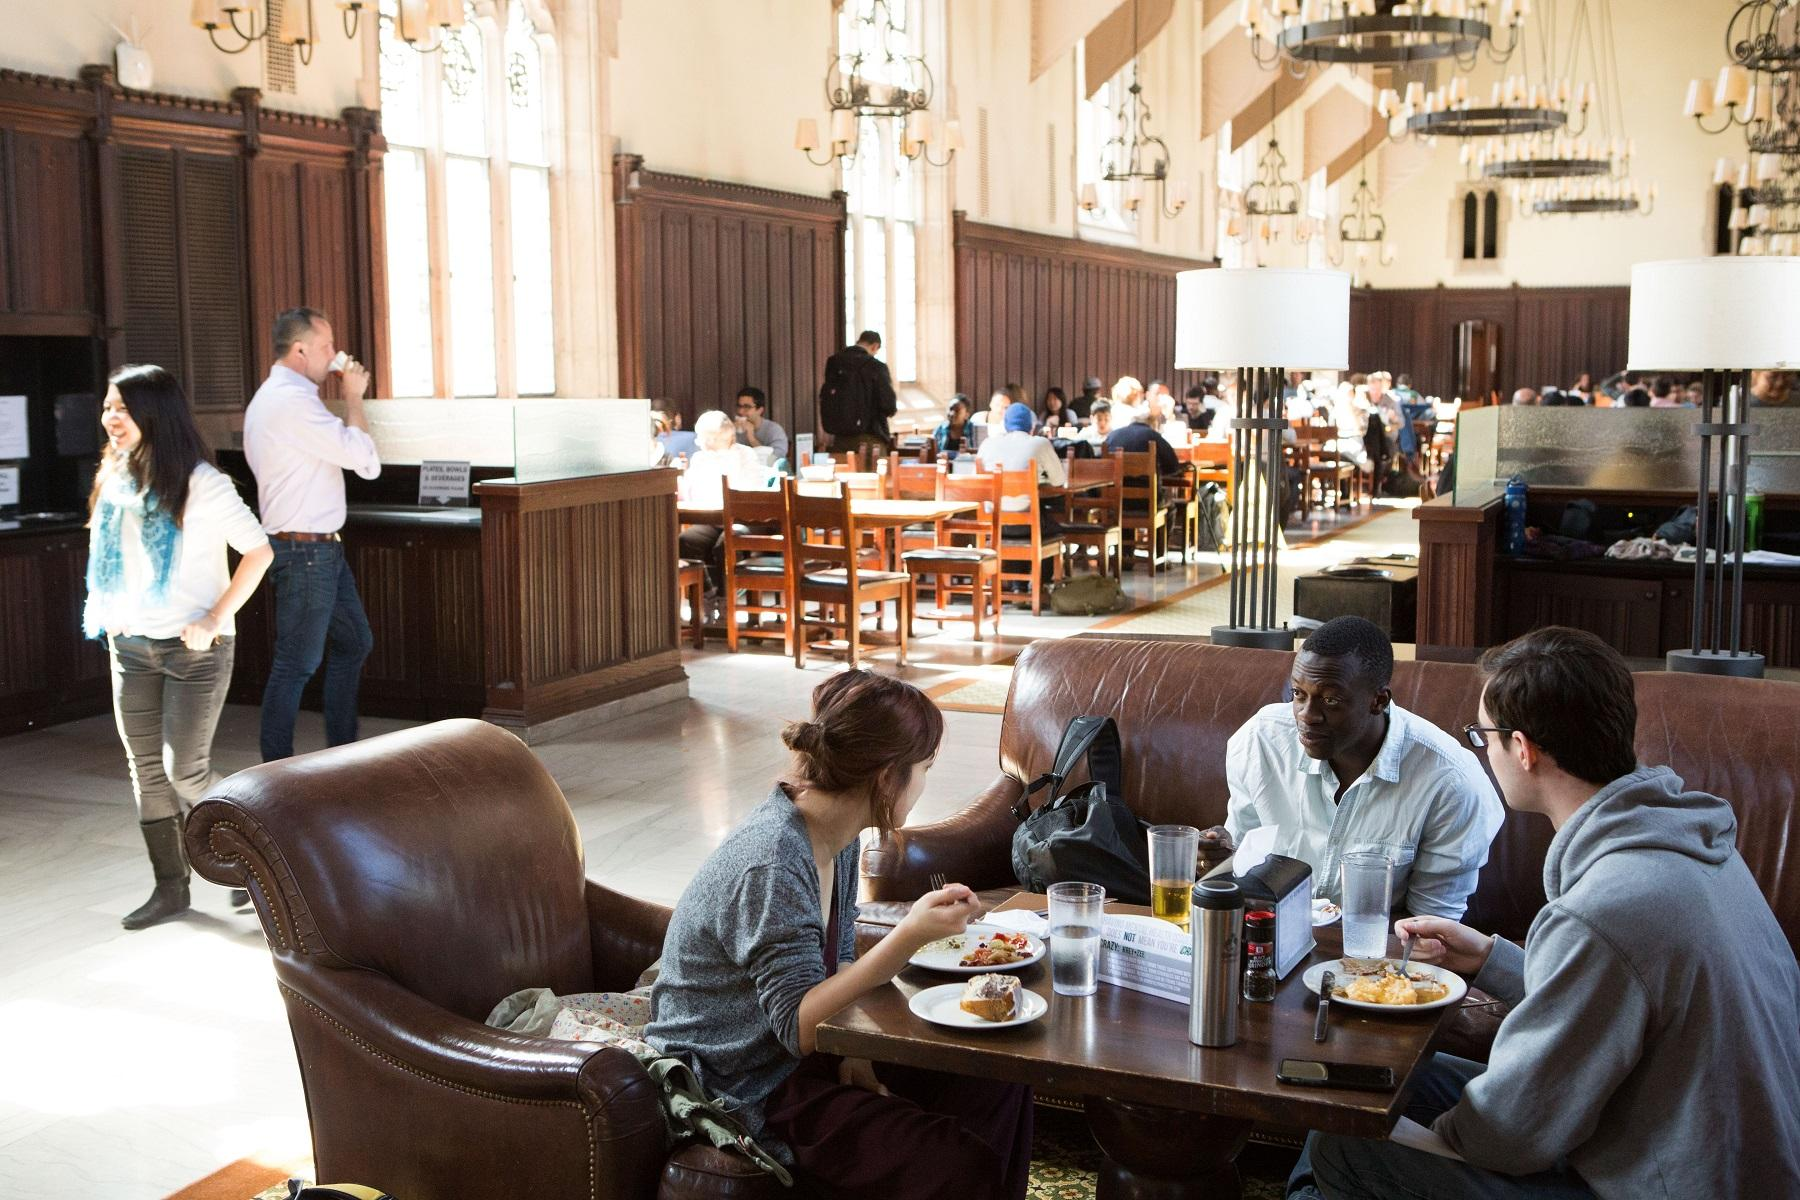 Students sitting together in the Rocky/Mathey dining hall eating